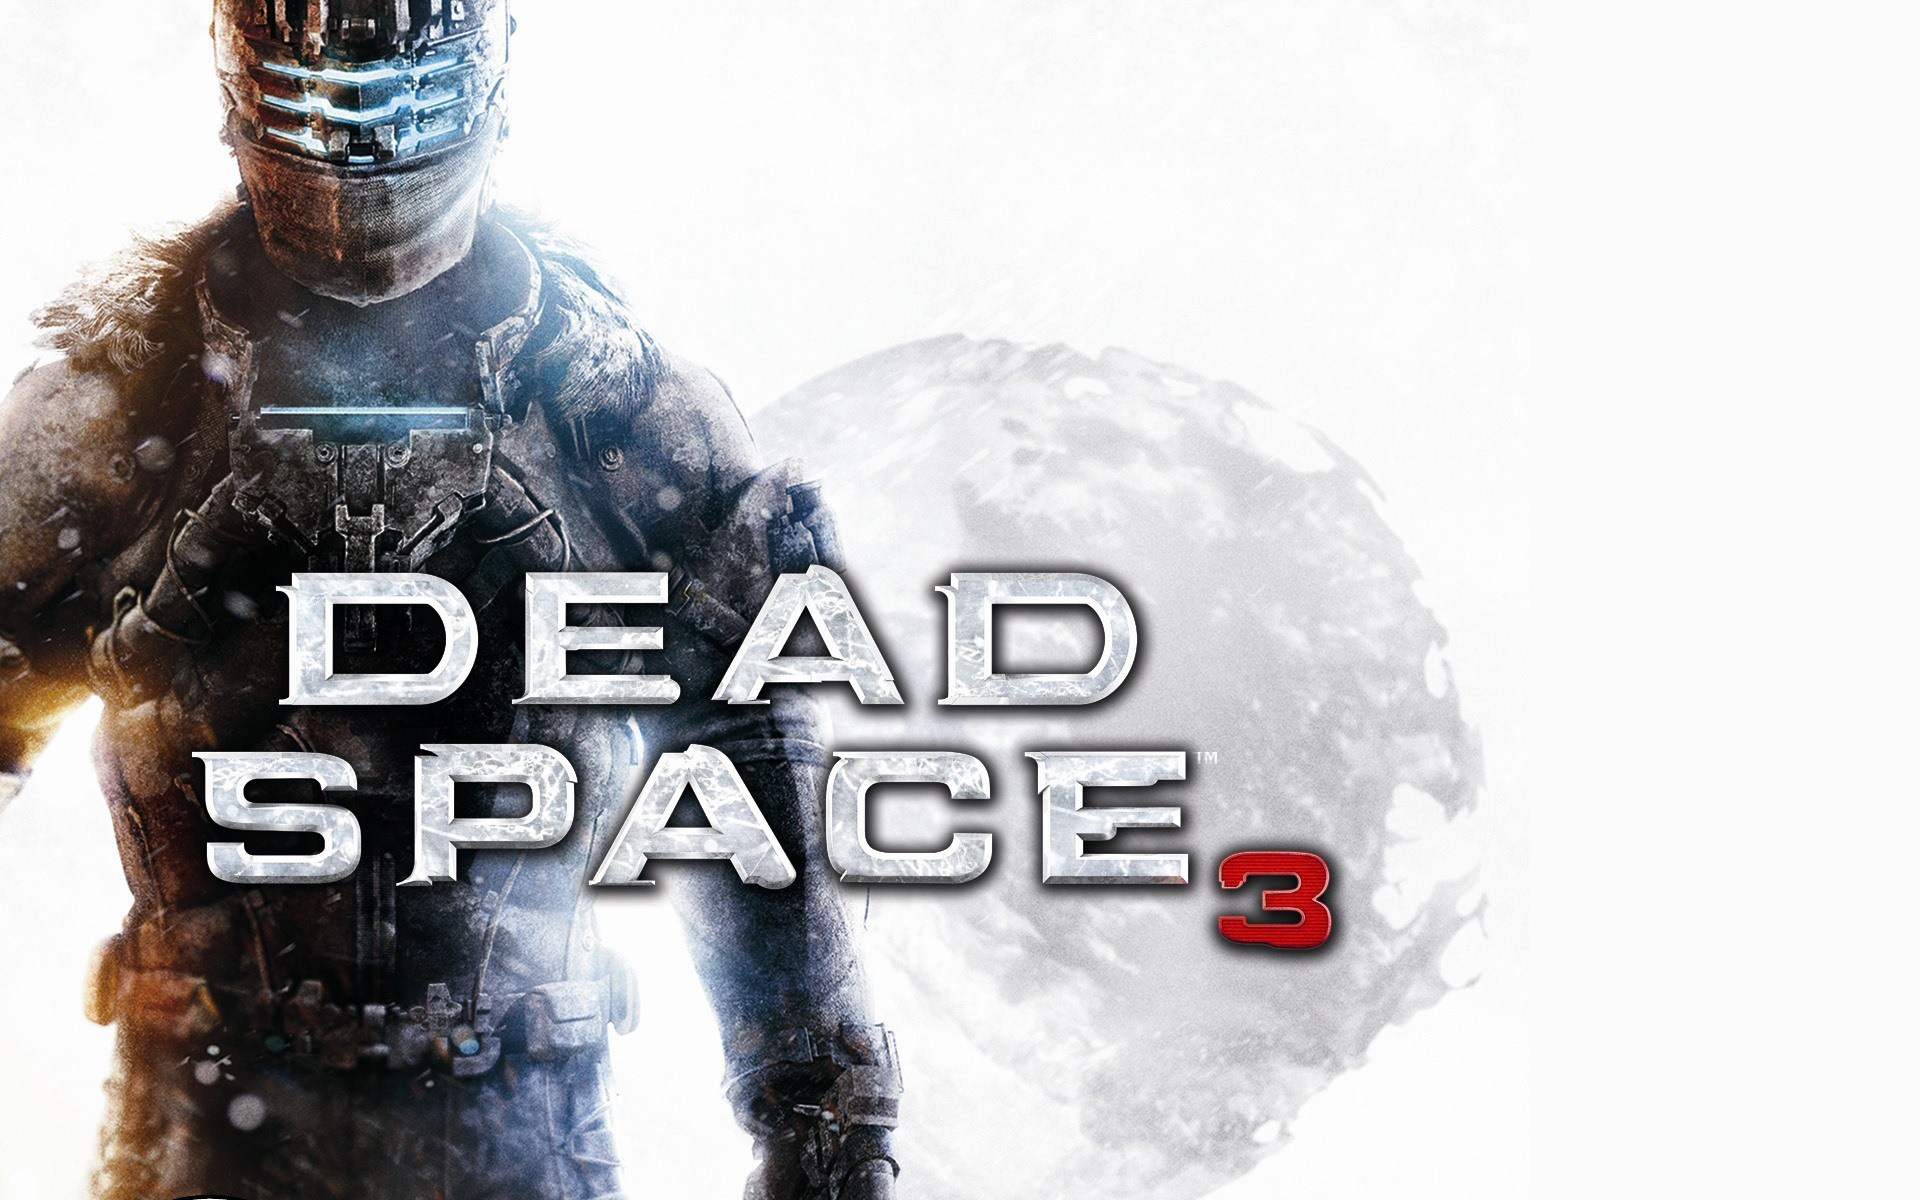 Dead Space 3 (RU/ENG) (Origin) (Promo Code + Warranty)